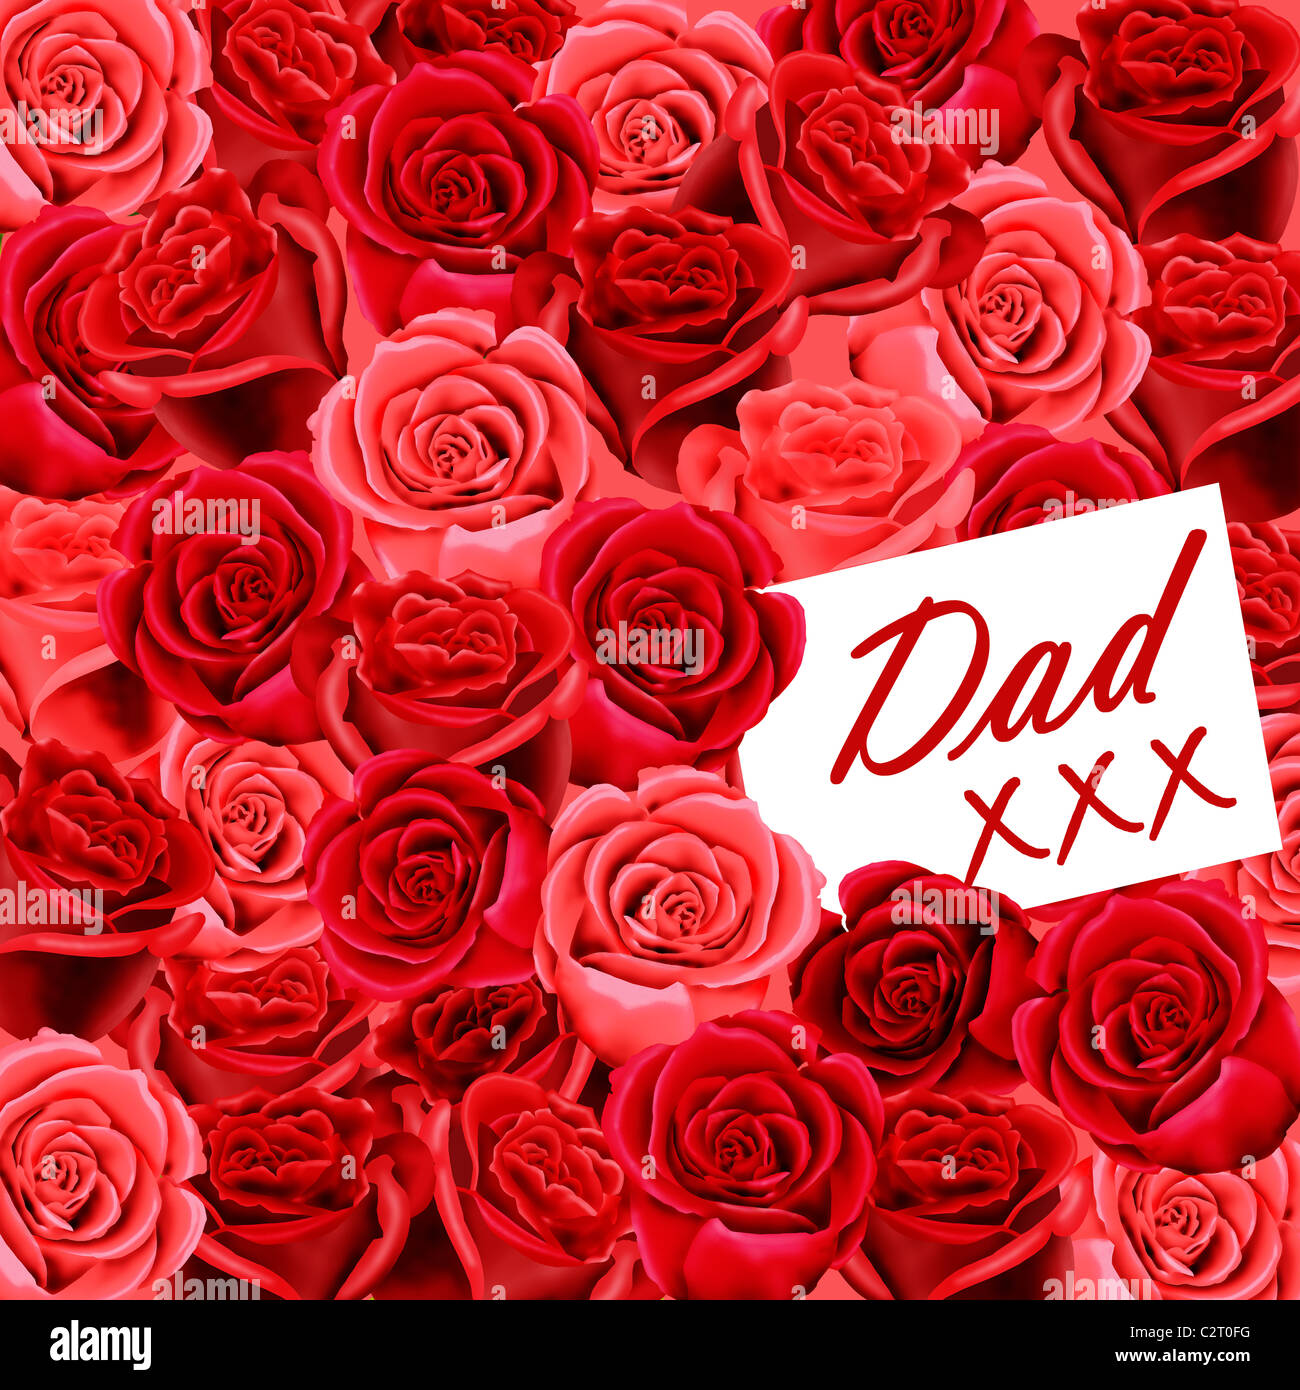 birthday or father's day card to dad with a card and kisses on a